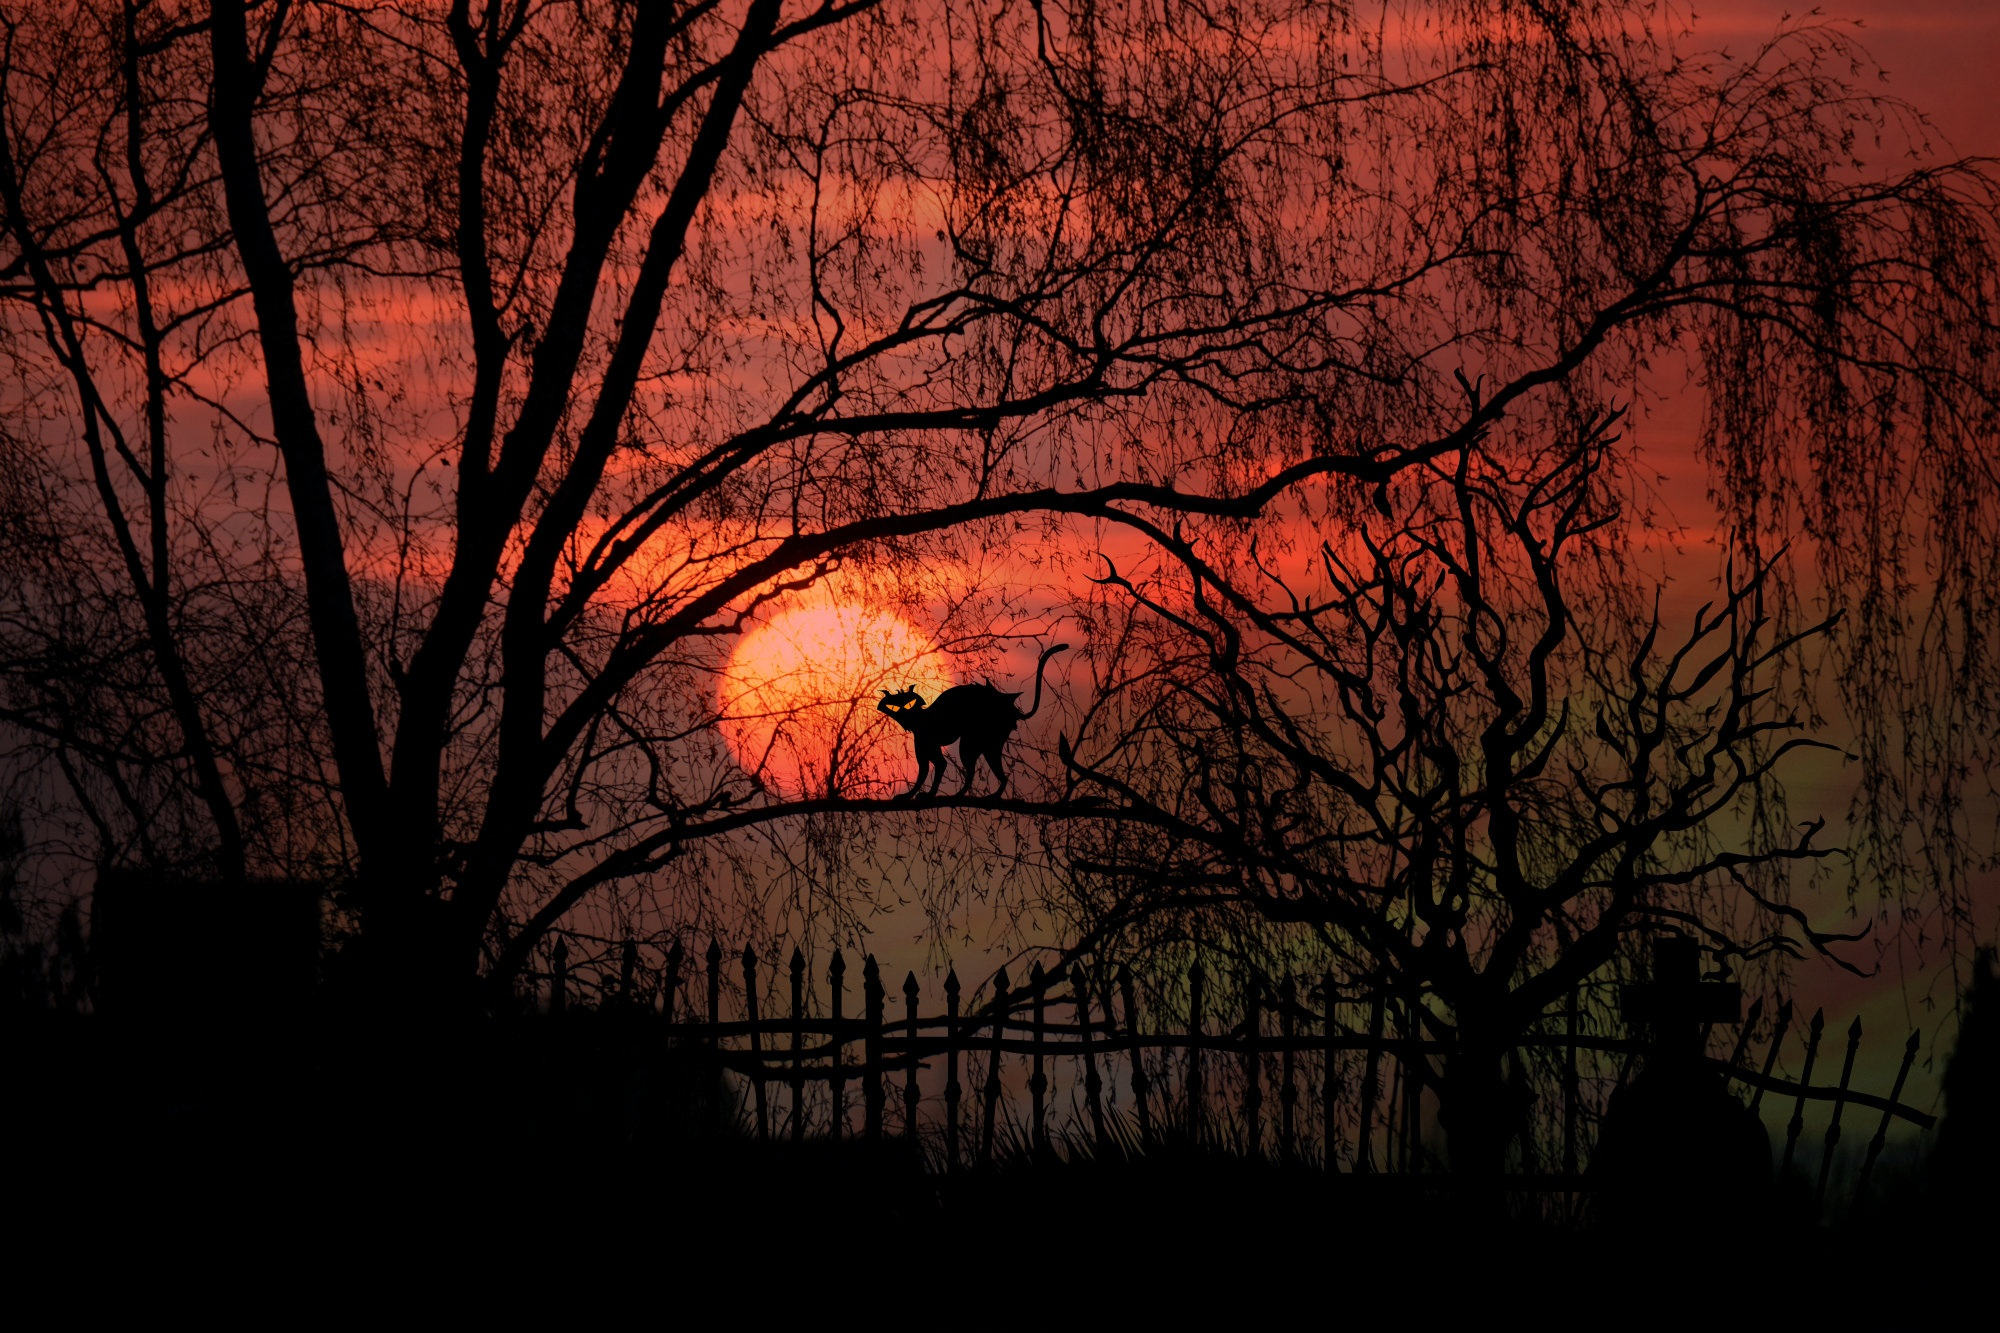 Black cat on a background of the red moon free image